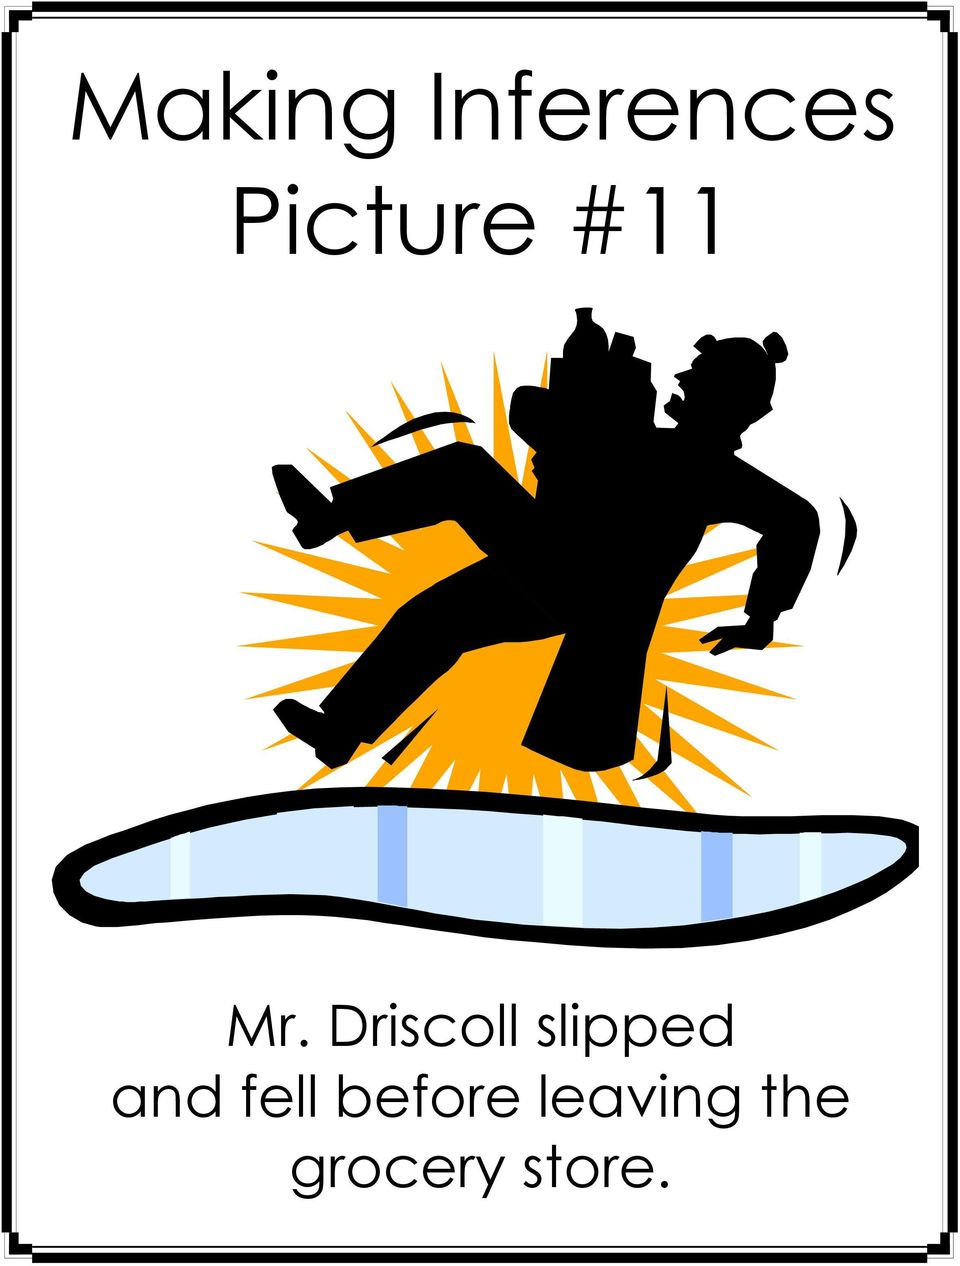 Driscoll slipped and